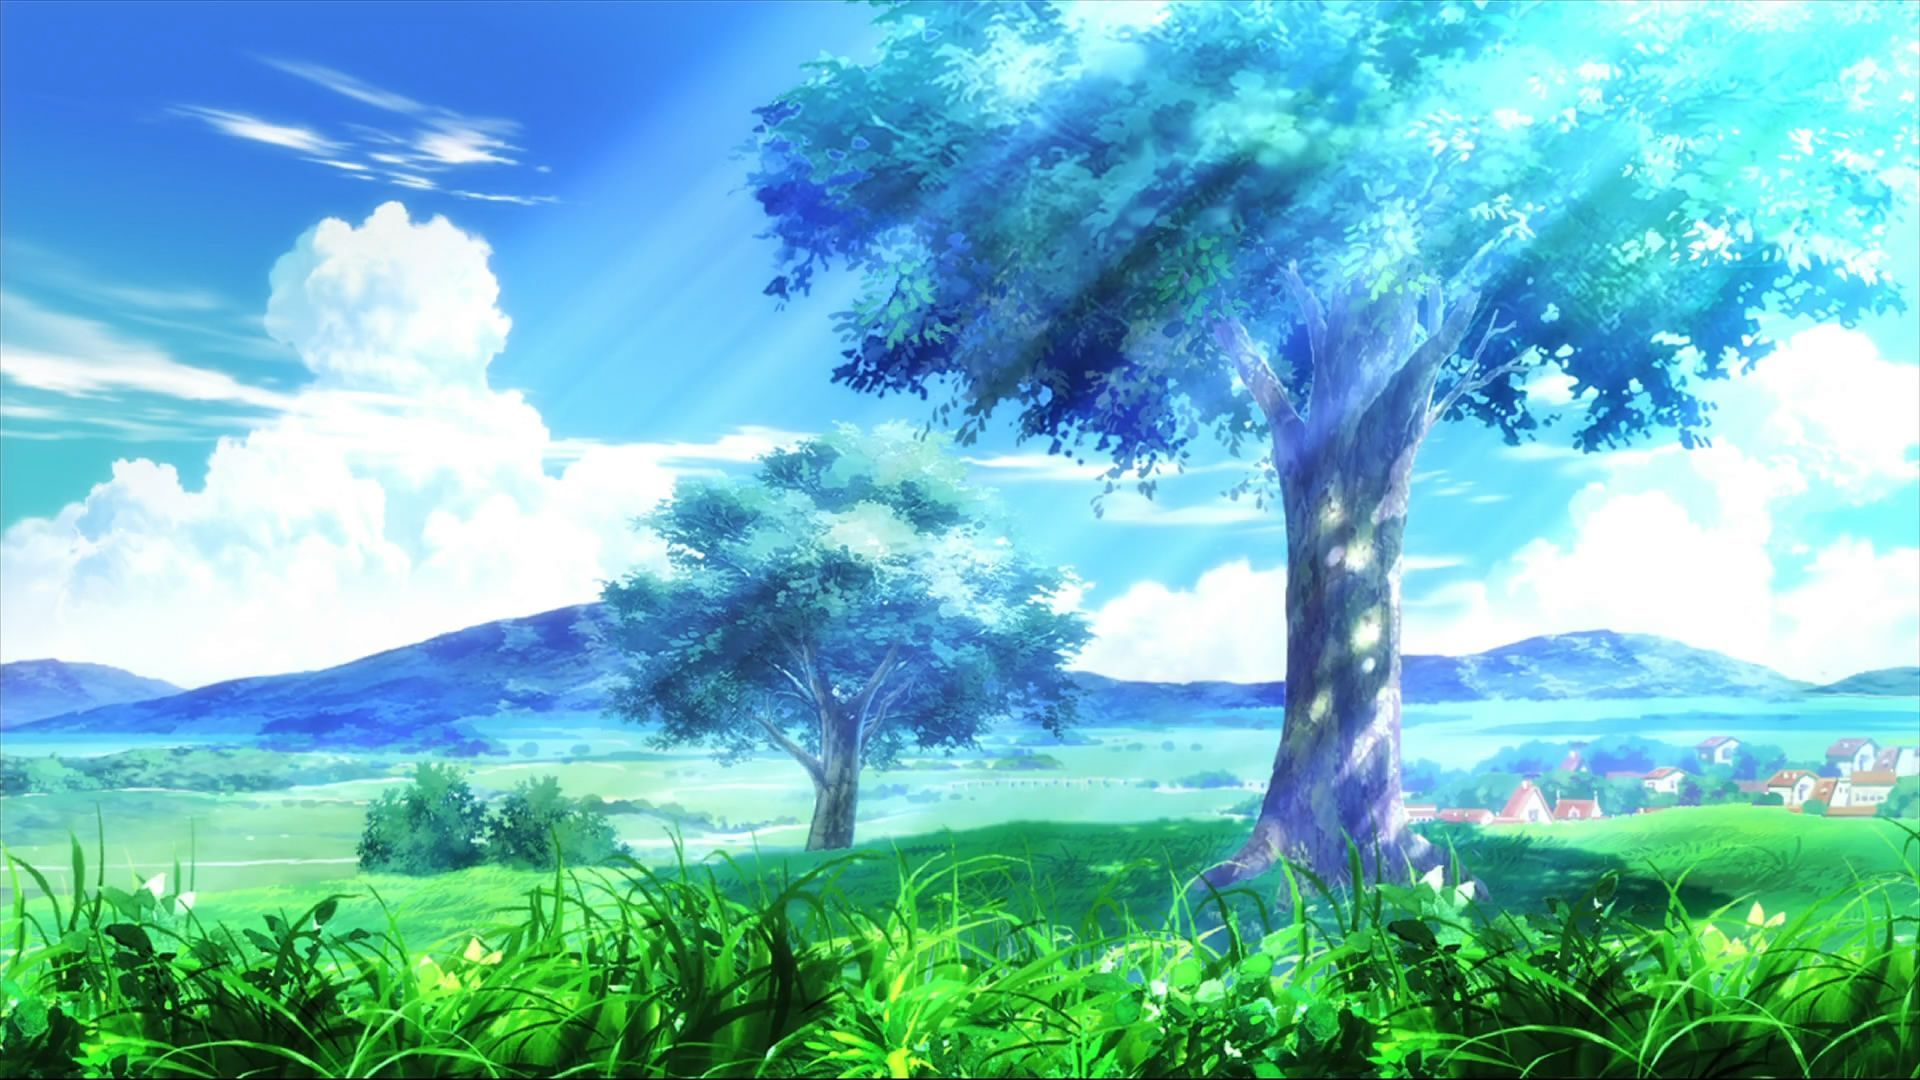 Ef History Of Ring Tones Tree Clouds Grass Light Nature Anime Backgrounds Wallpapers Anime Scenery Wallpaper Landscape Wallpaper